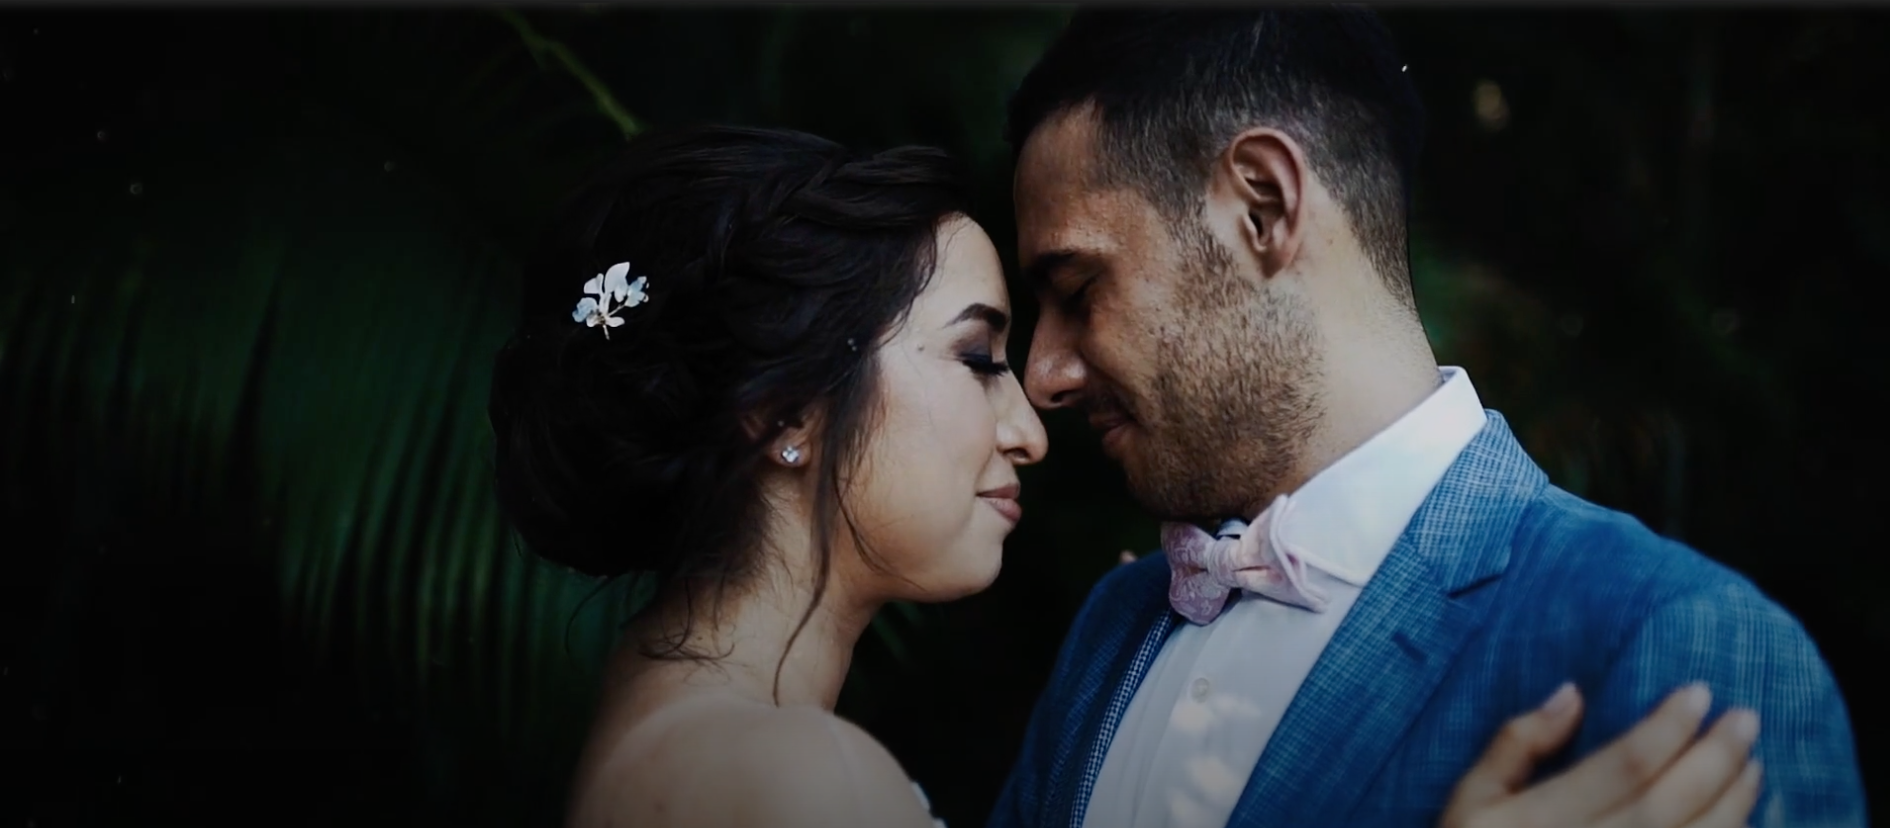 Mexican couple embracing at wedding